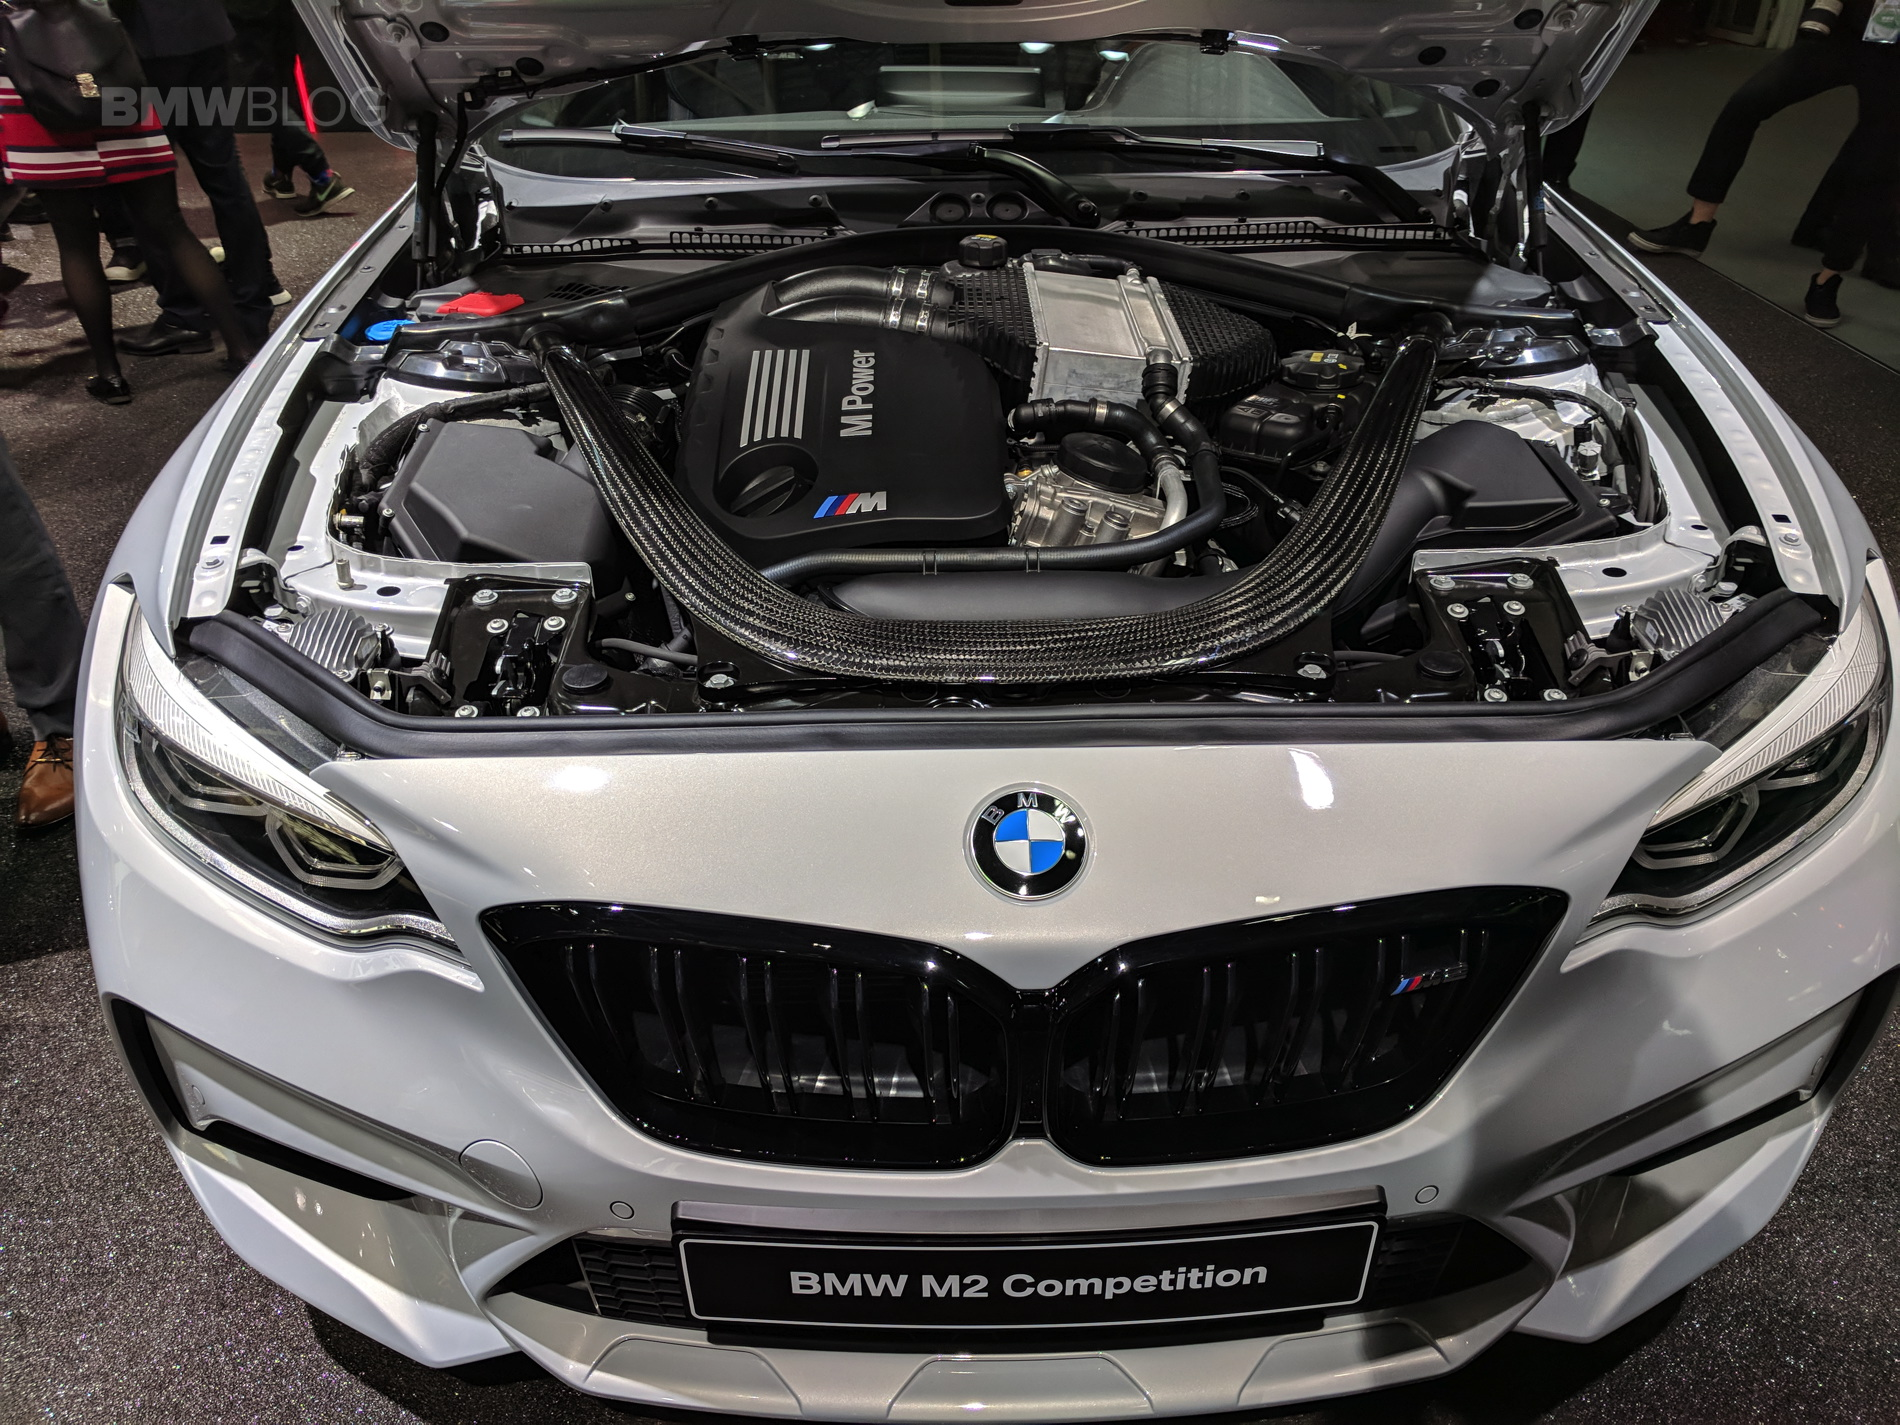 BMW M2 Competition engine photos 15